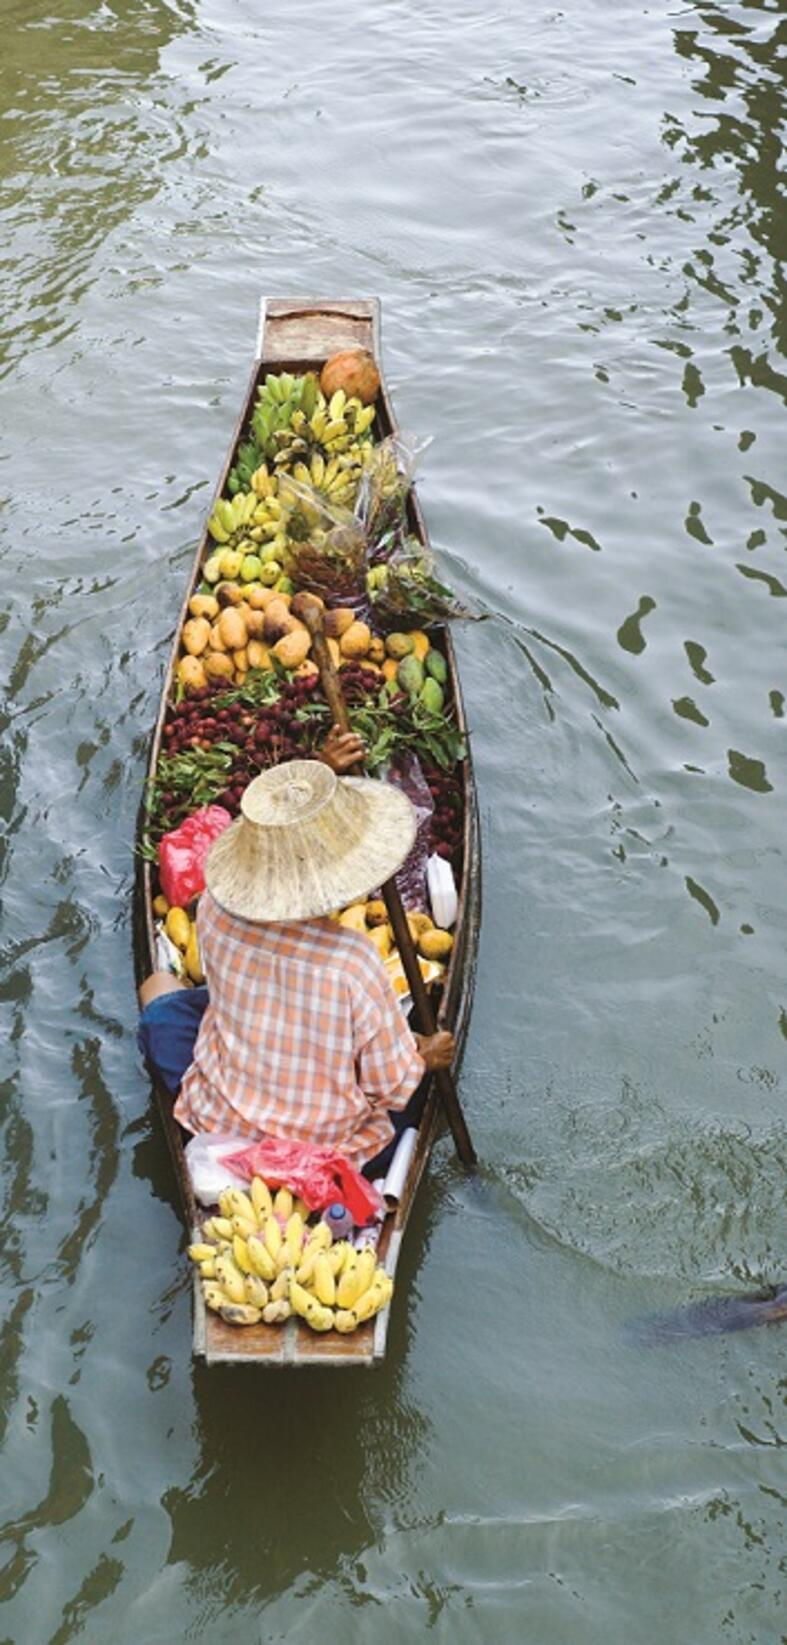 Farmer on a boat filled with fruit